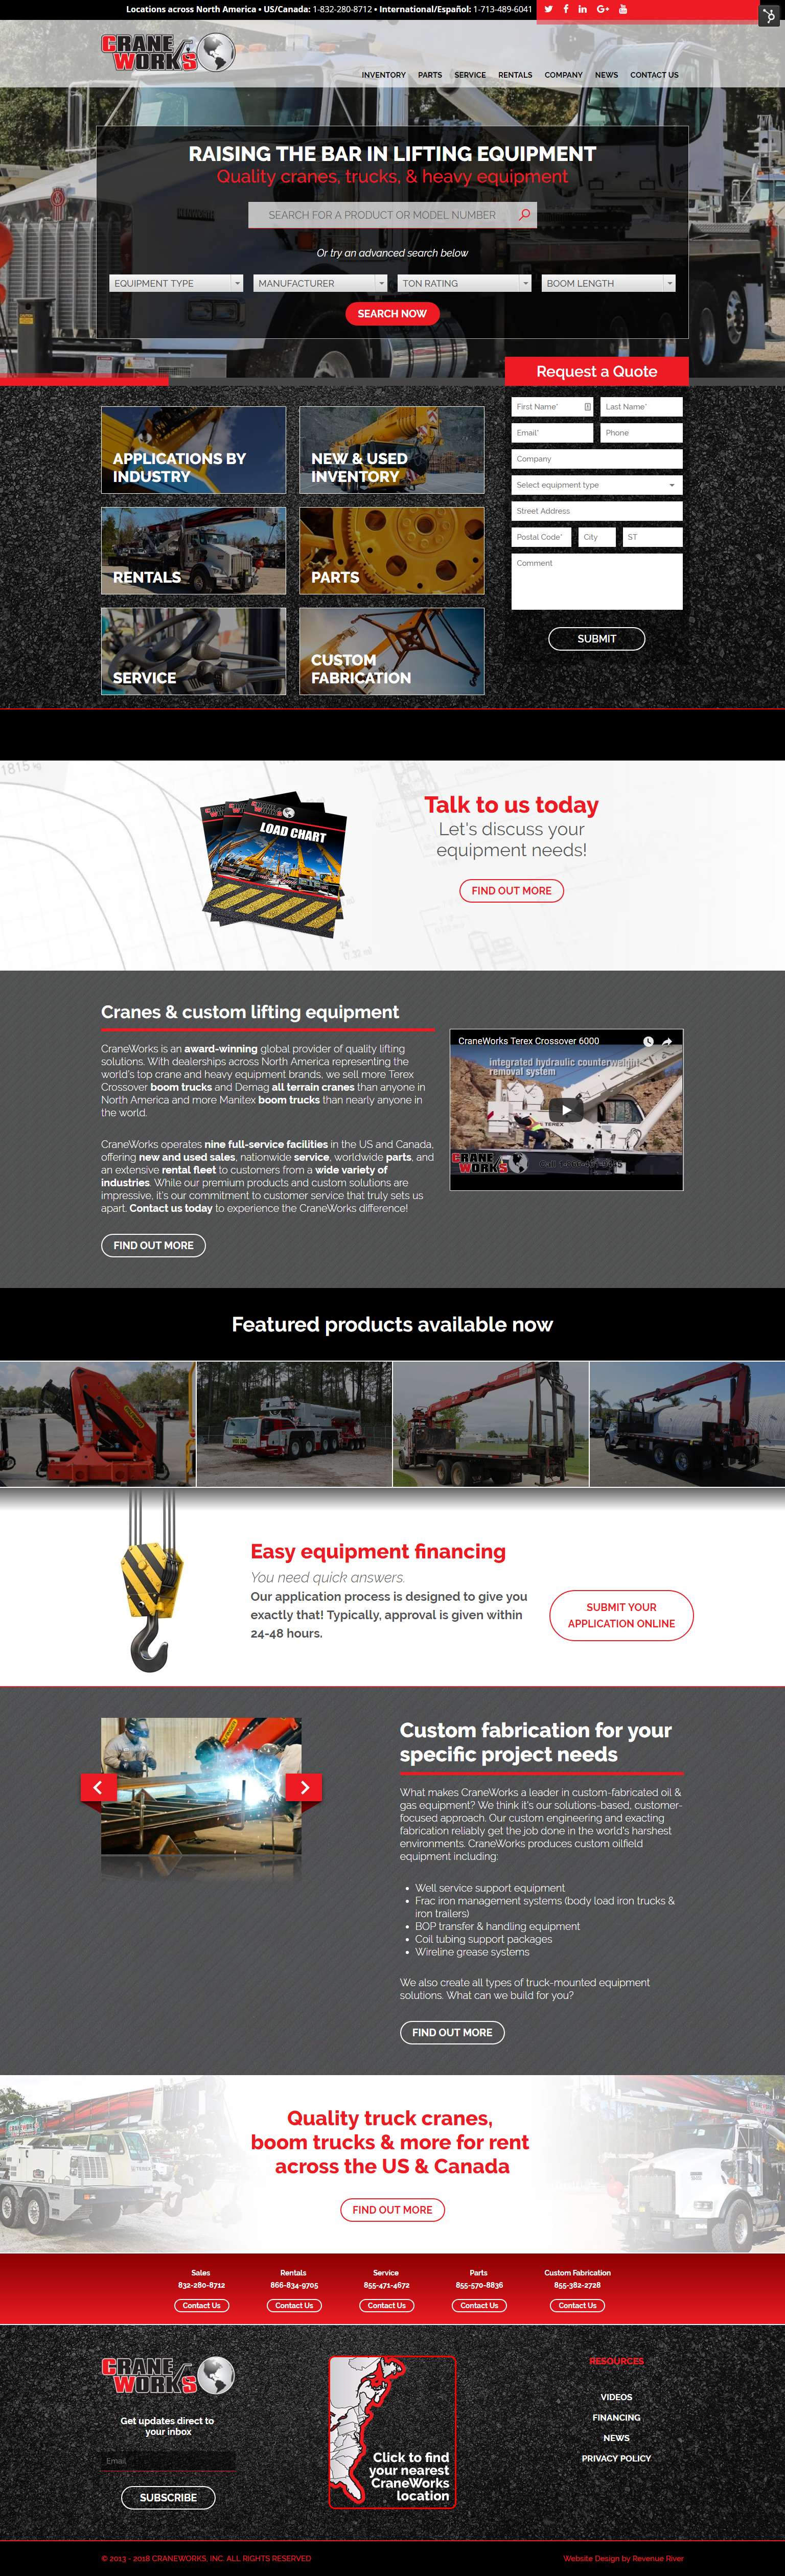 craneworks new home page